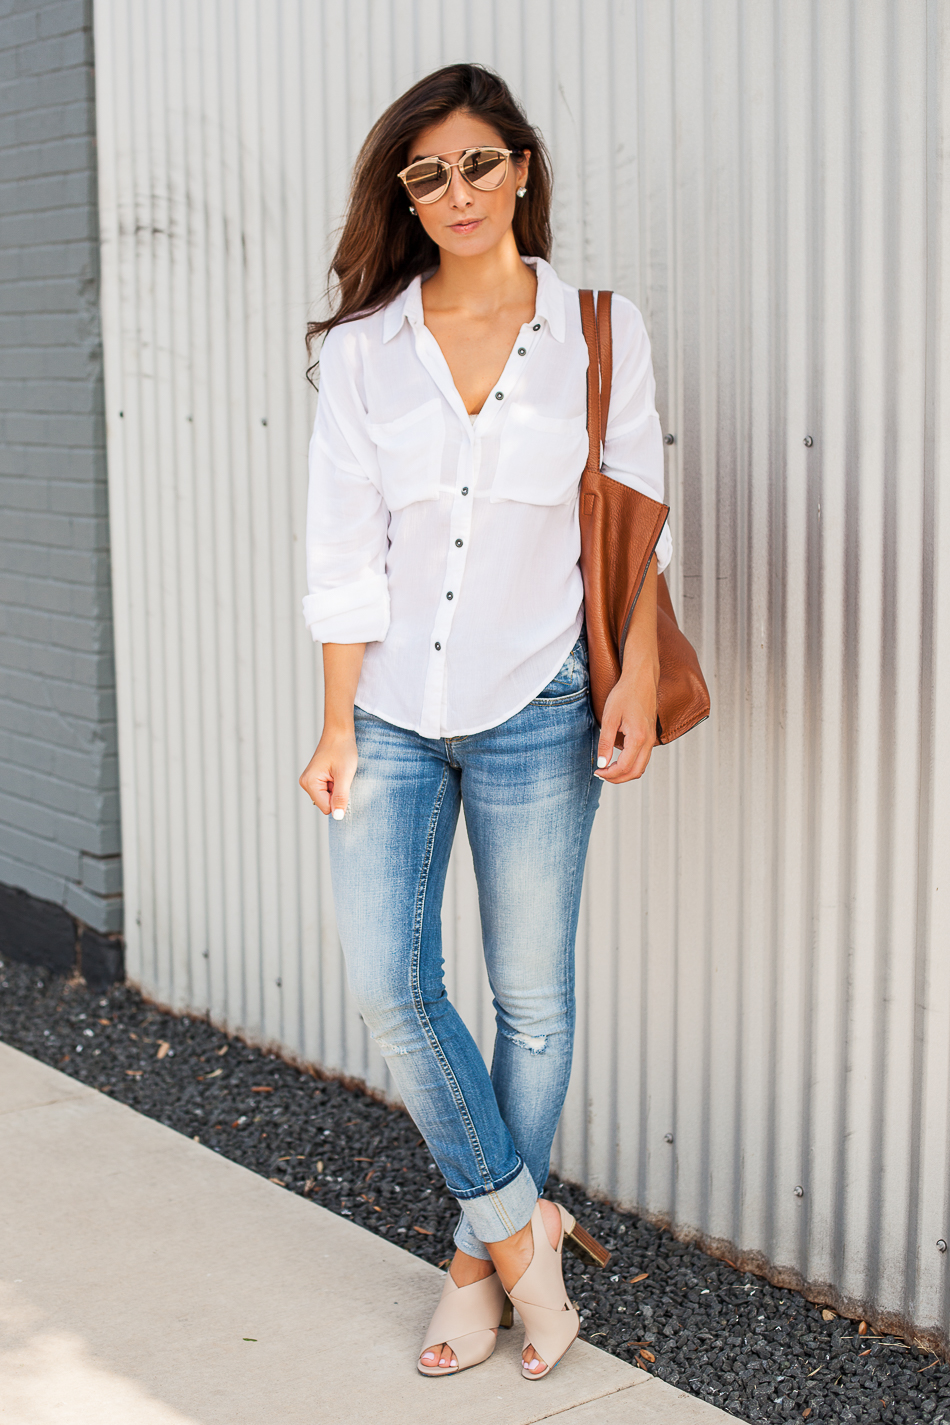 effortless chic outfit